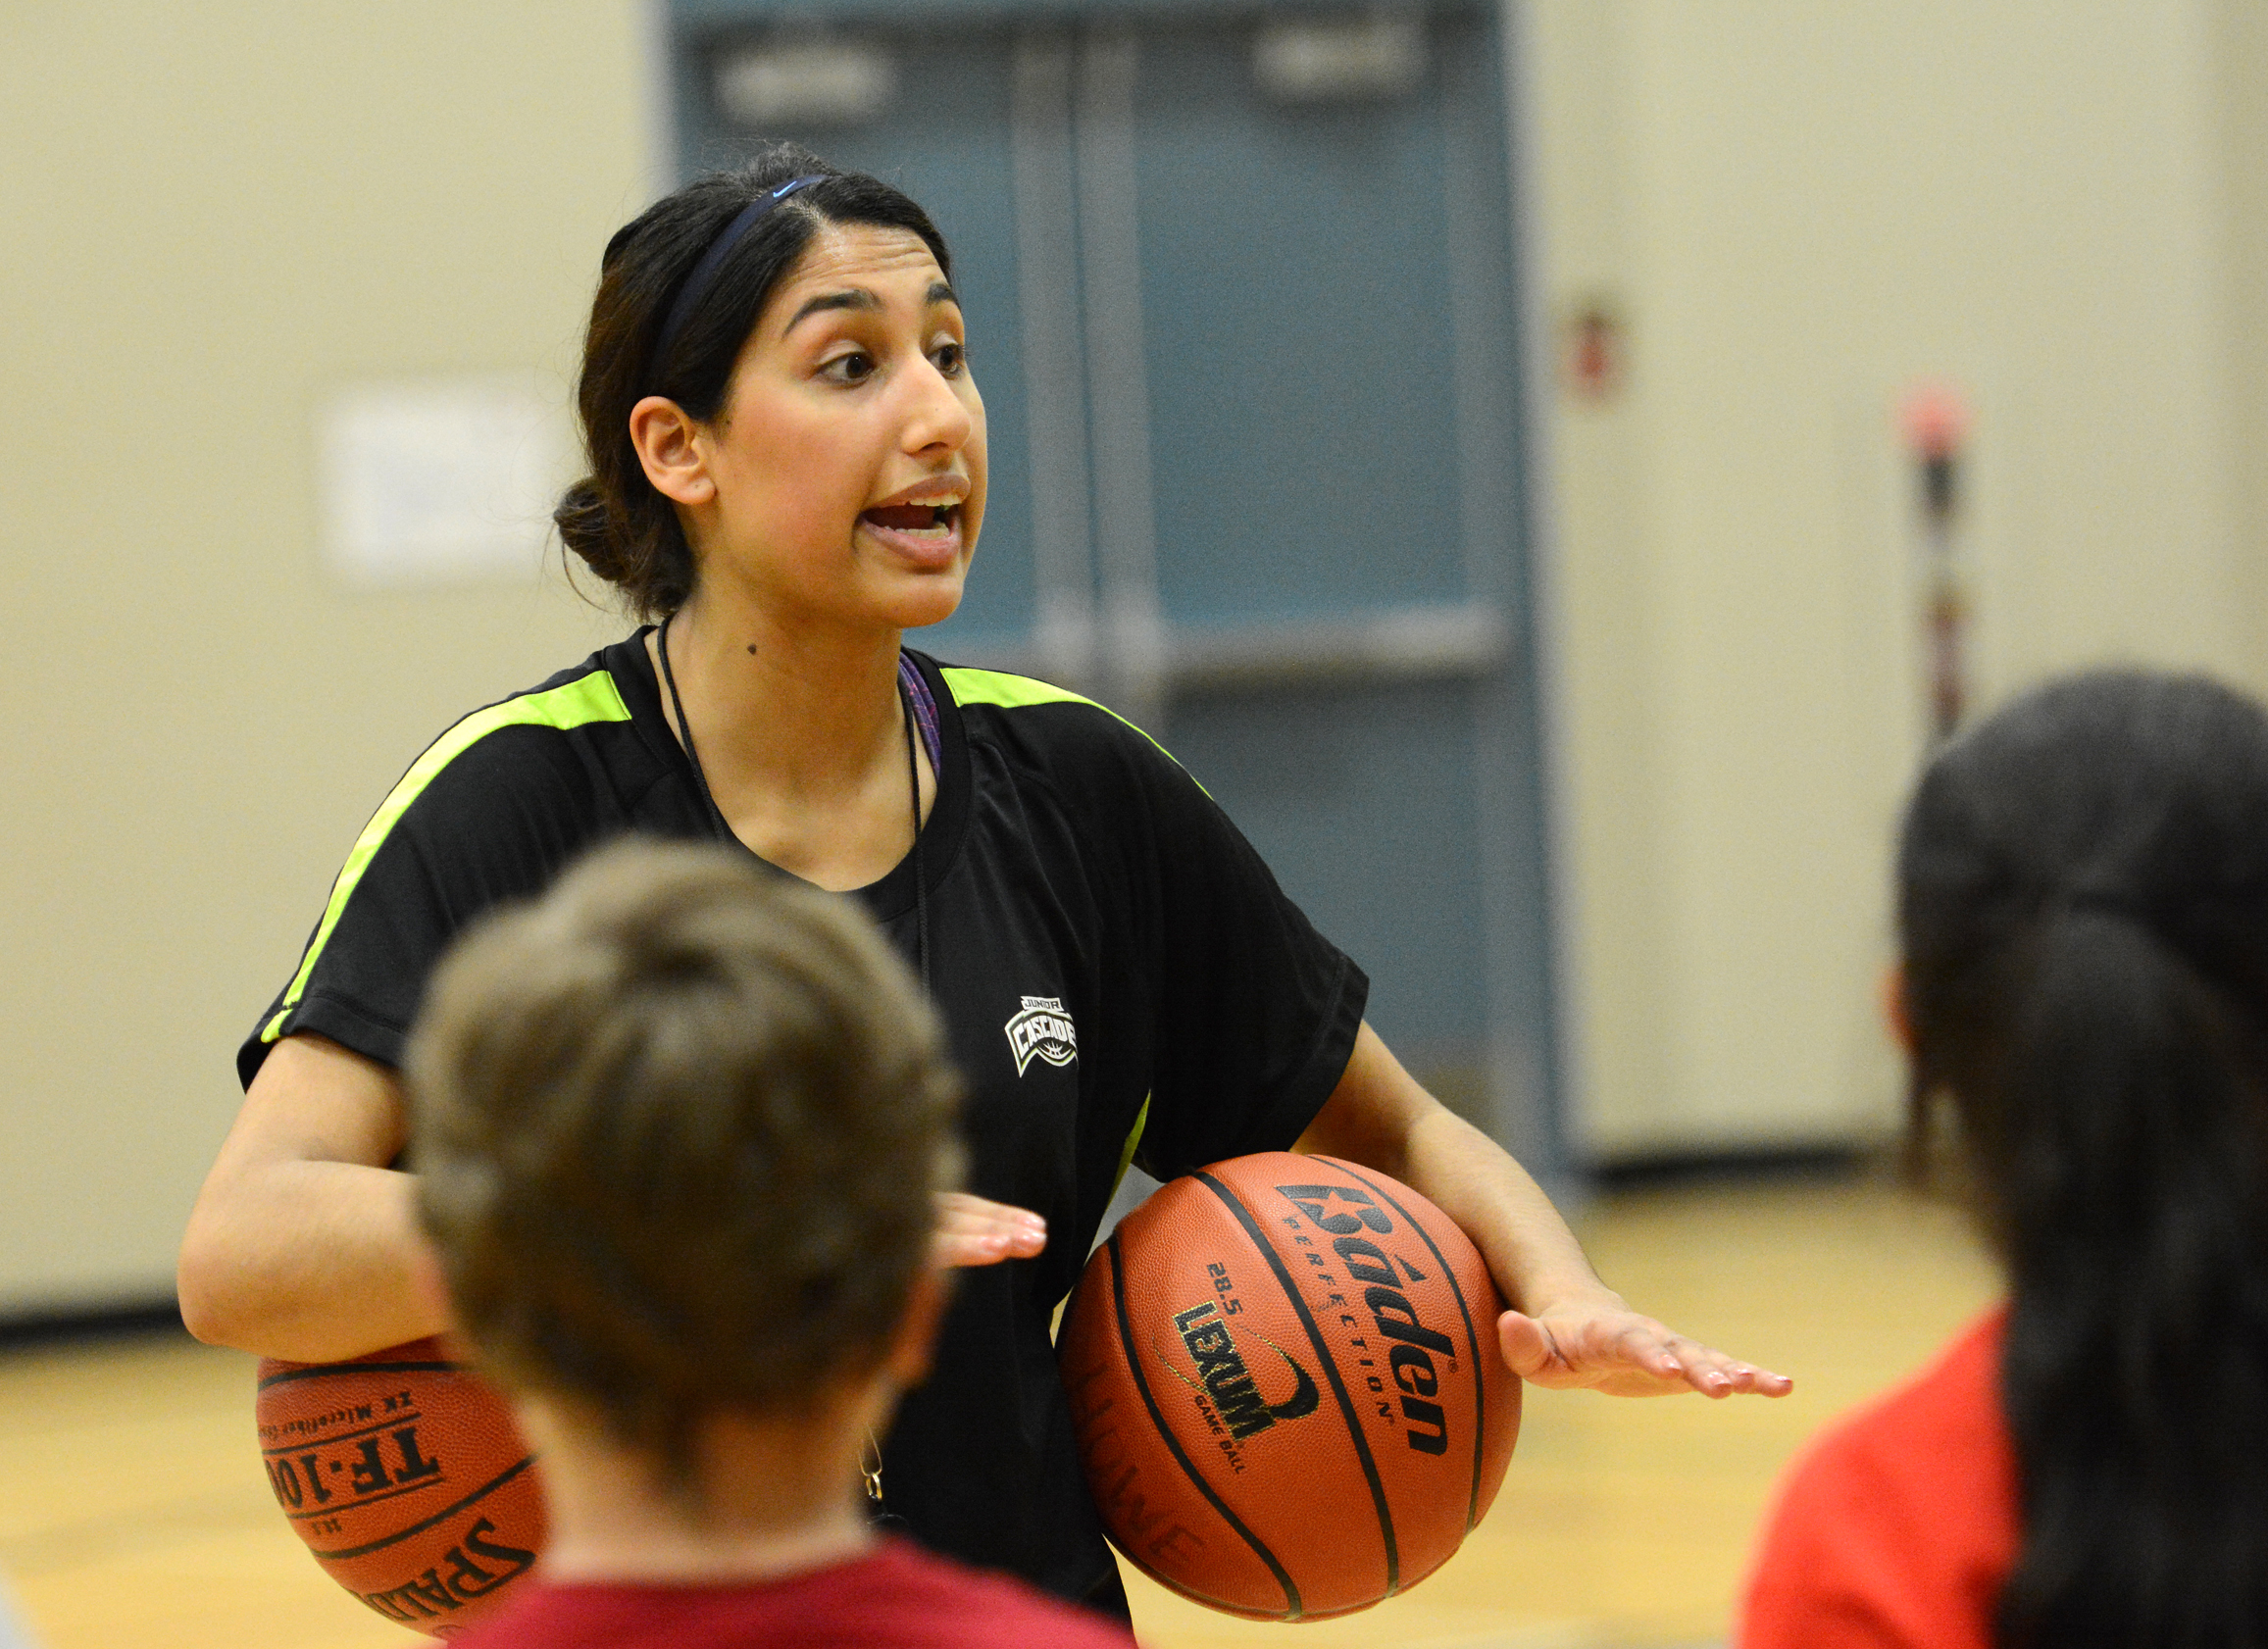 Jaslyen Singh gives instructions to Howe Middle School students during a recent Books and Basketball session. The program, now in its second year, features Cascades basketball players serving as coaches and tutors for Grade 6 and 7 students.